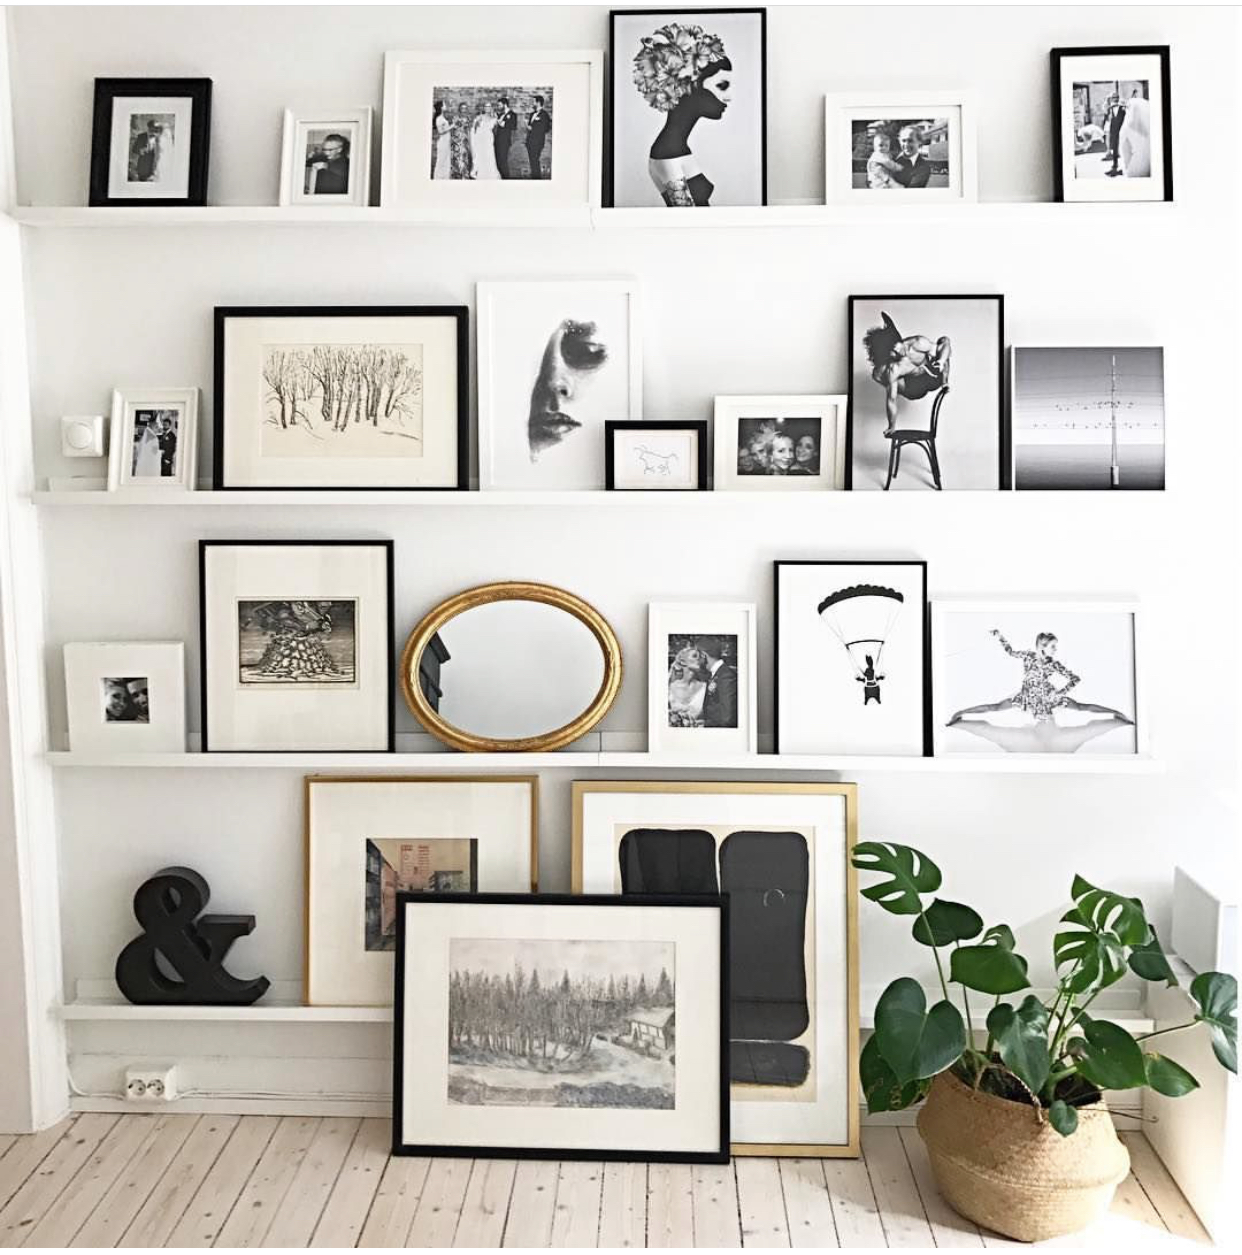 - This is a quick fix but an effective one. One or two new pieces (they don't have to break the bank) go a long way to freshening up a space. We LOVE a gallery wall. If you're nervous about committing (and we hear you), we recommend these fantastic gallery wall shelves. You can mix and match your art without ever having to hammer in a picture hook. Perfect for the easily bored/inspired…!(photo credit: Marianne Magraff)